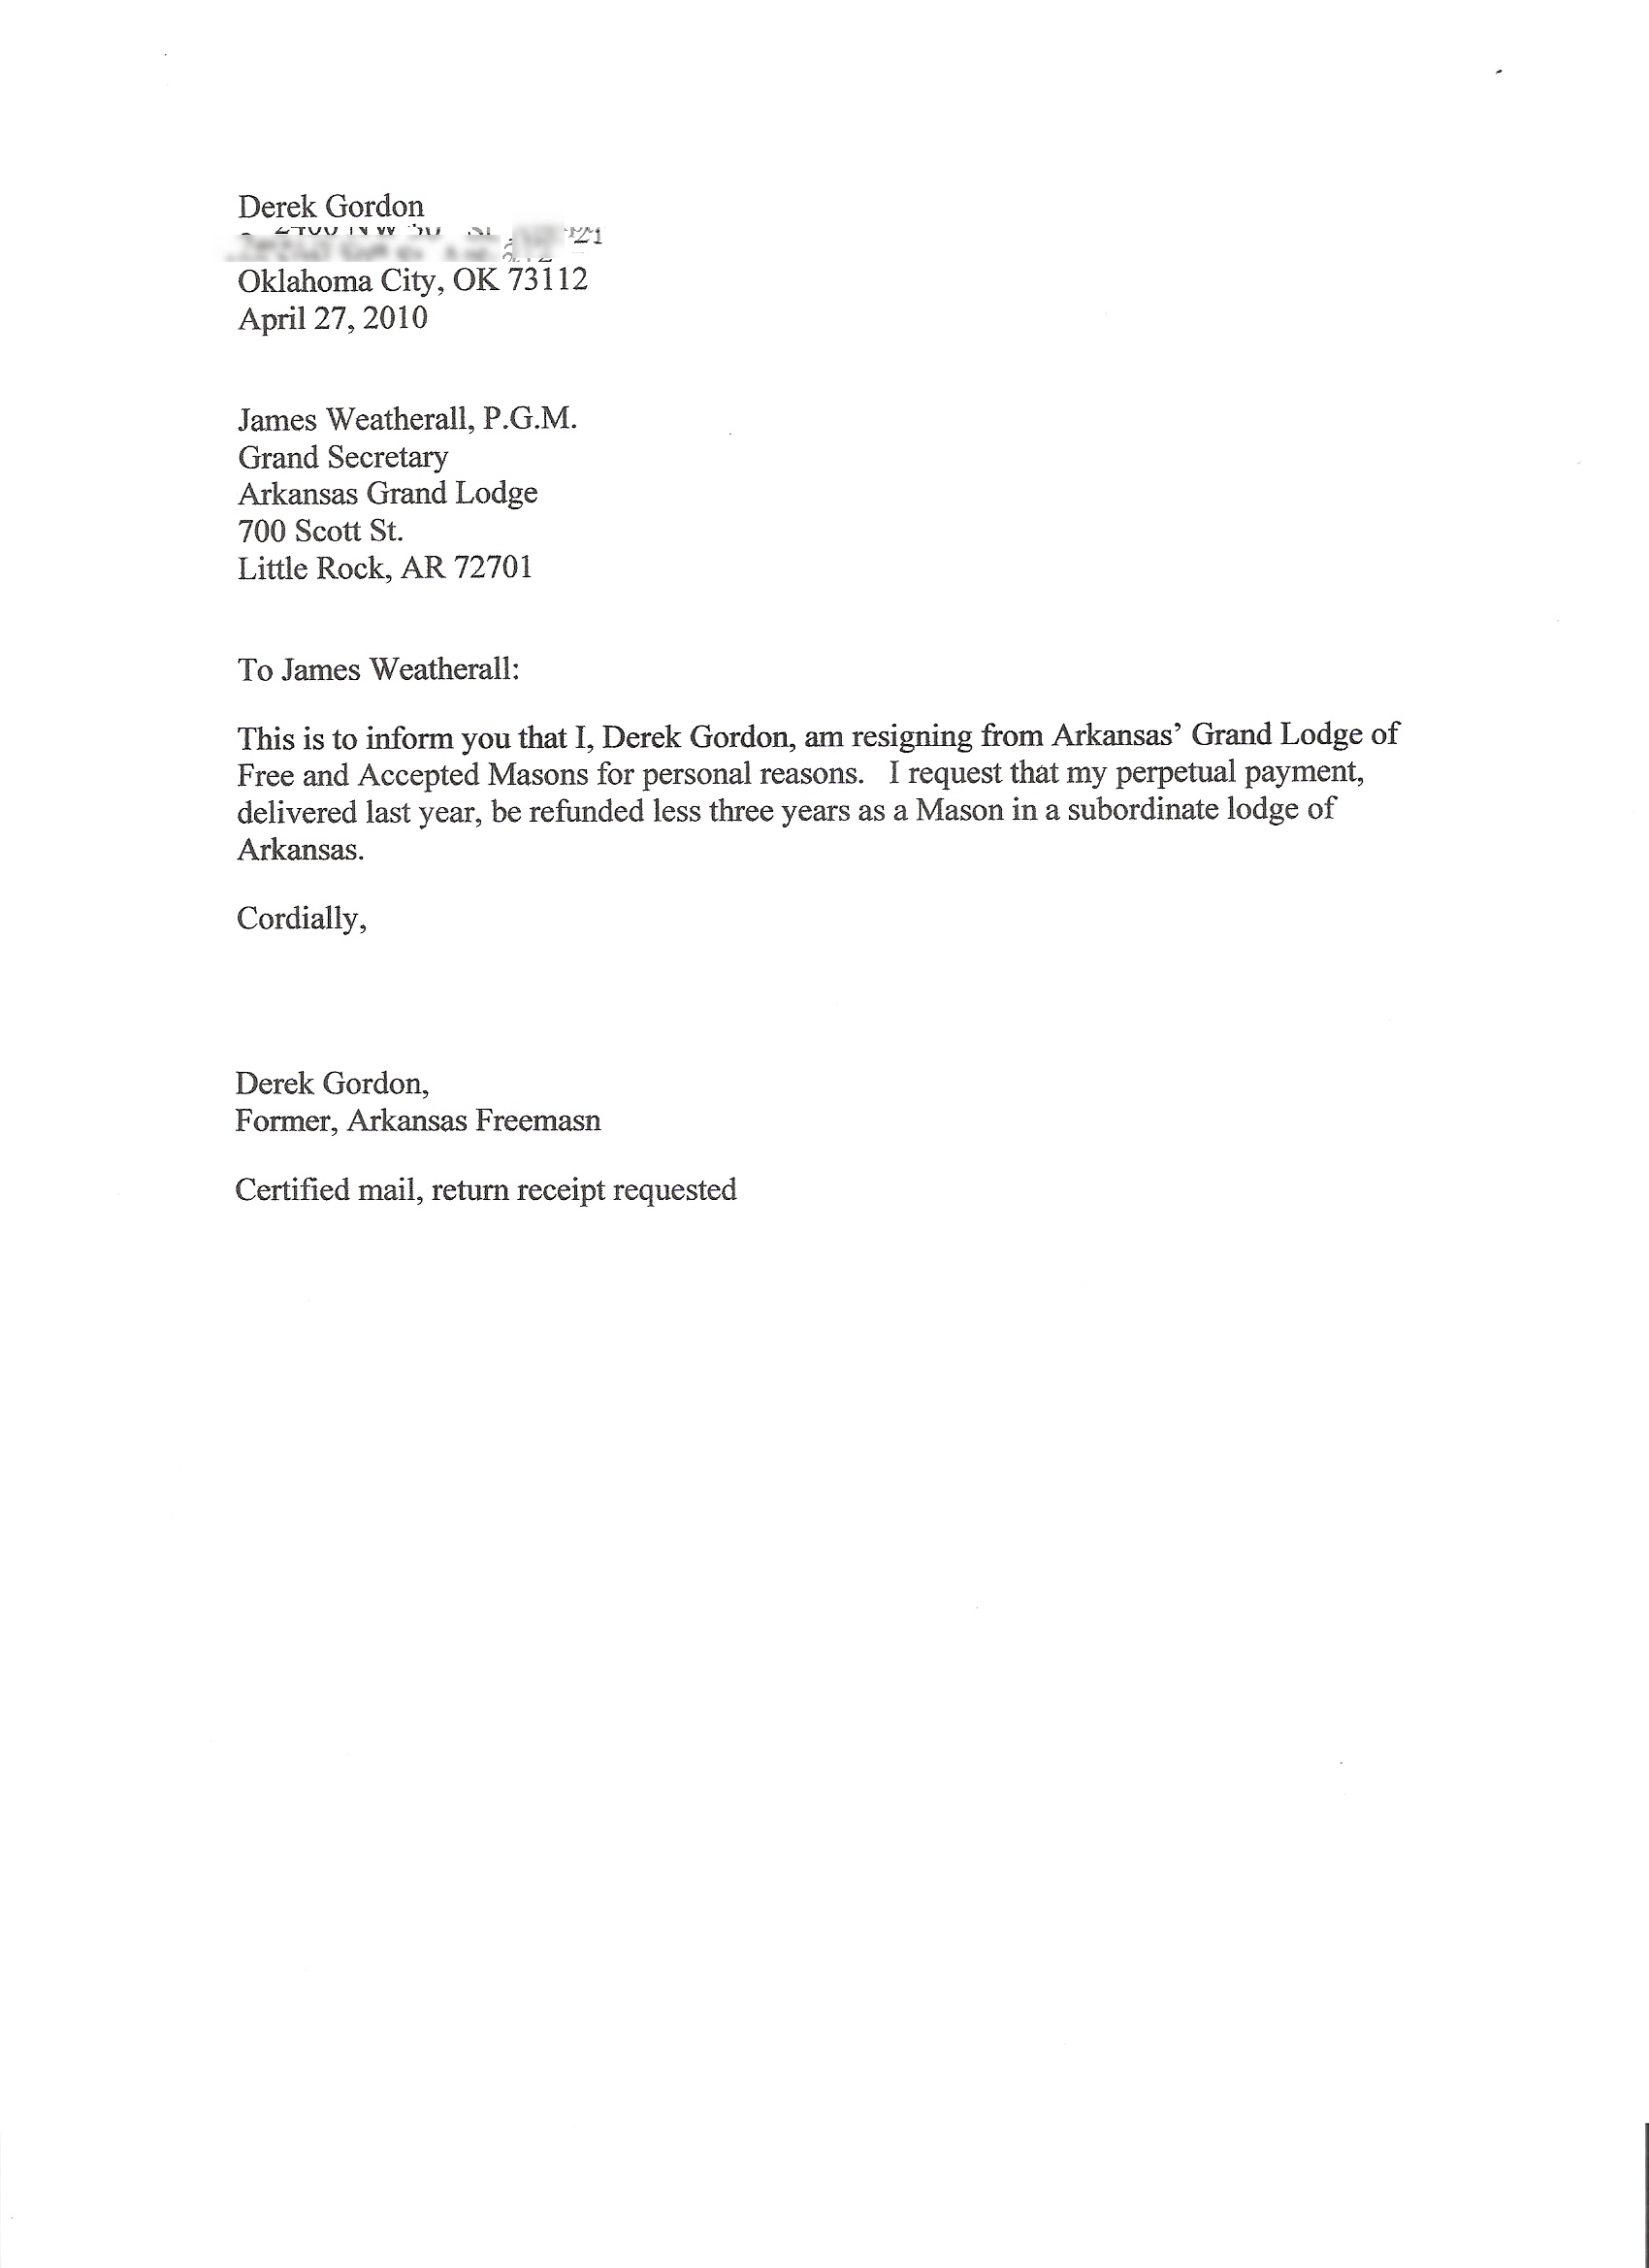 Simple Resignation Letter Resignation Letter example certified mail